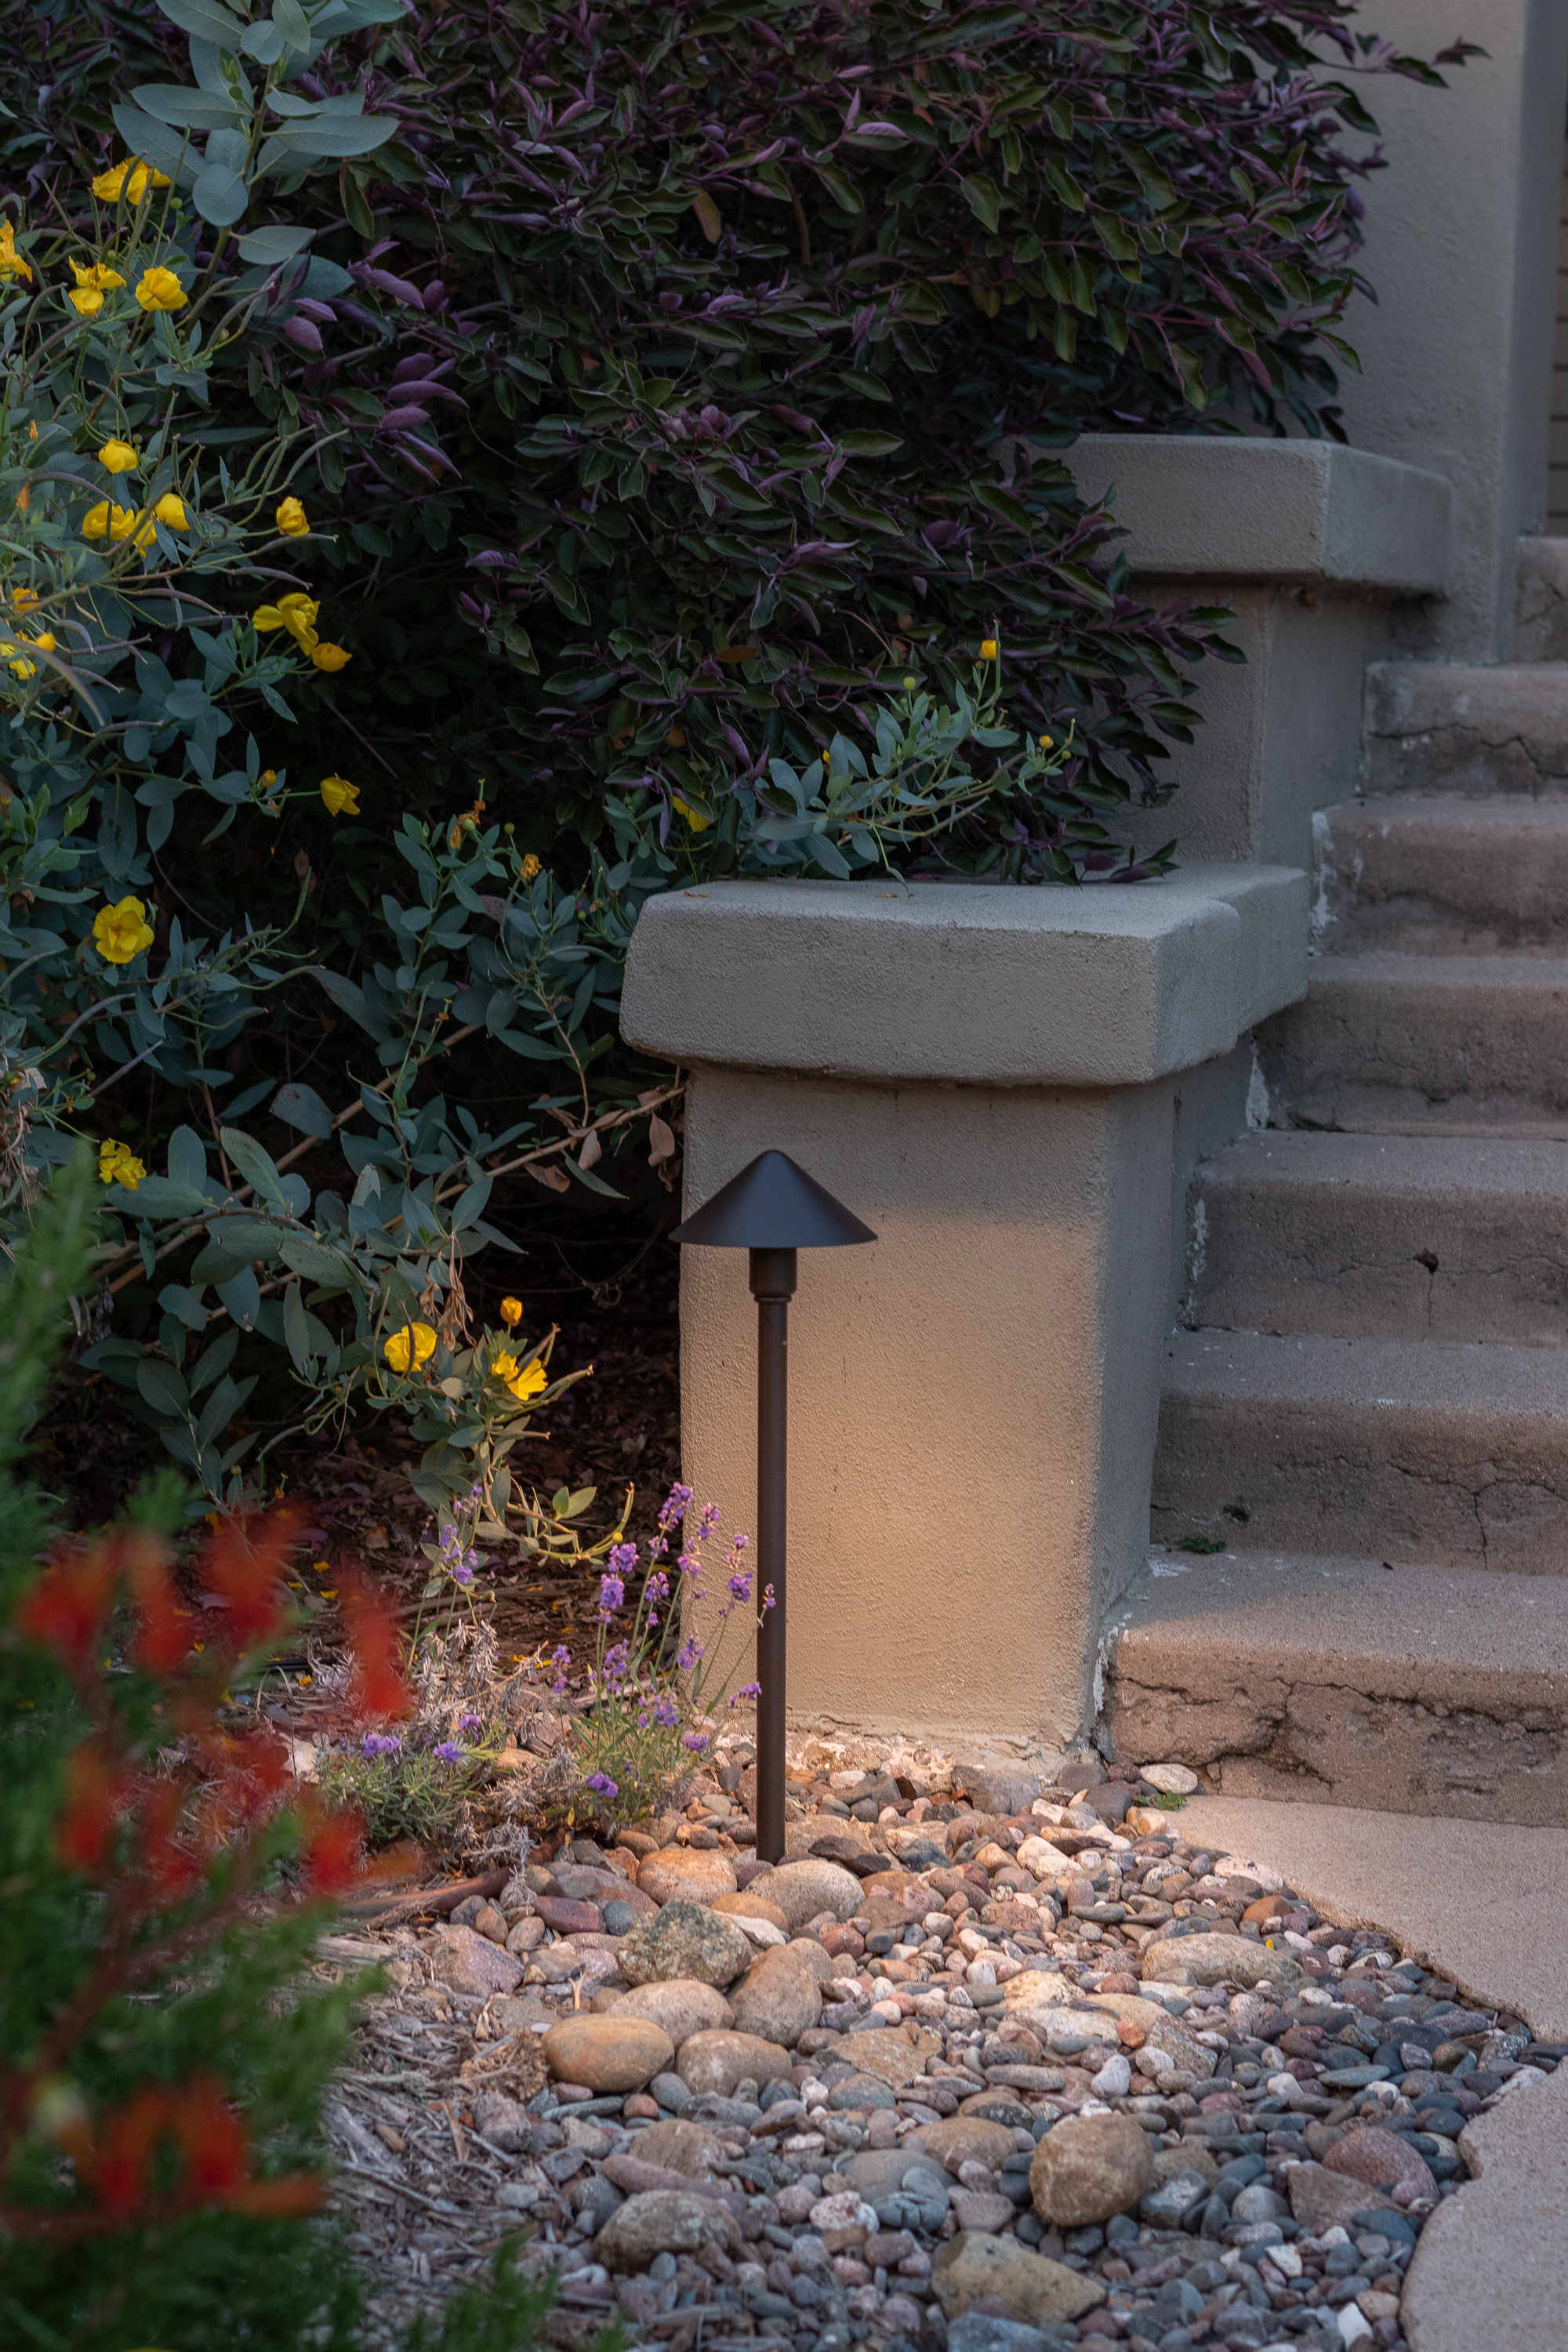 The Gold Hive Landscape Lighting Kichler How To California Garden Front Yard-0195.jpg